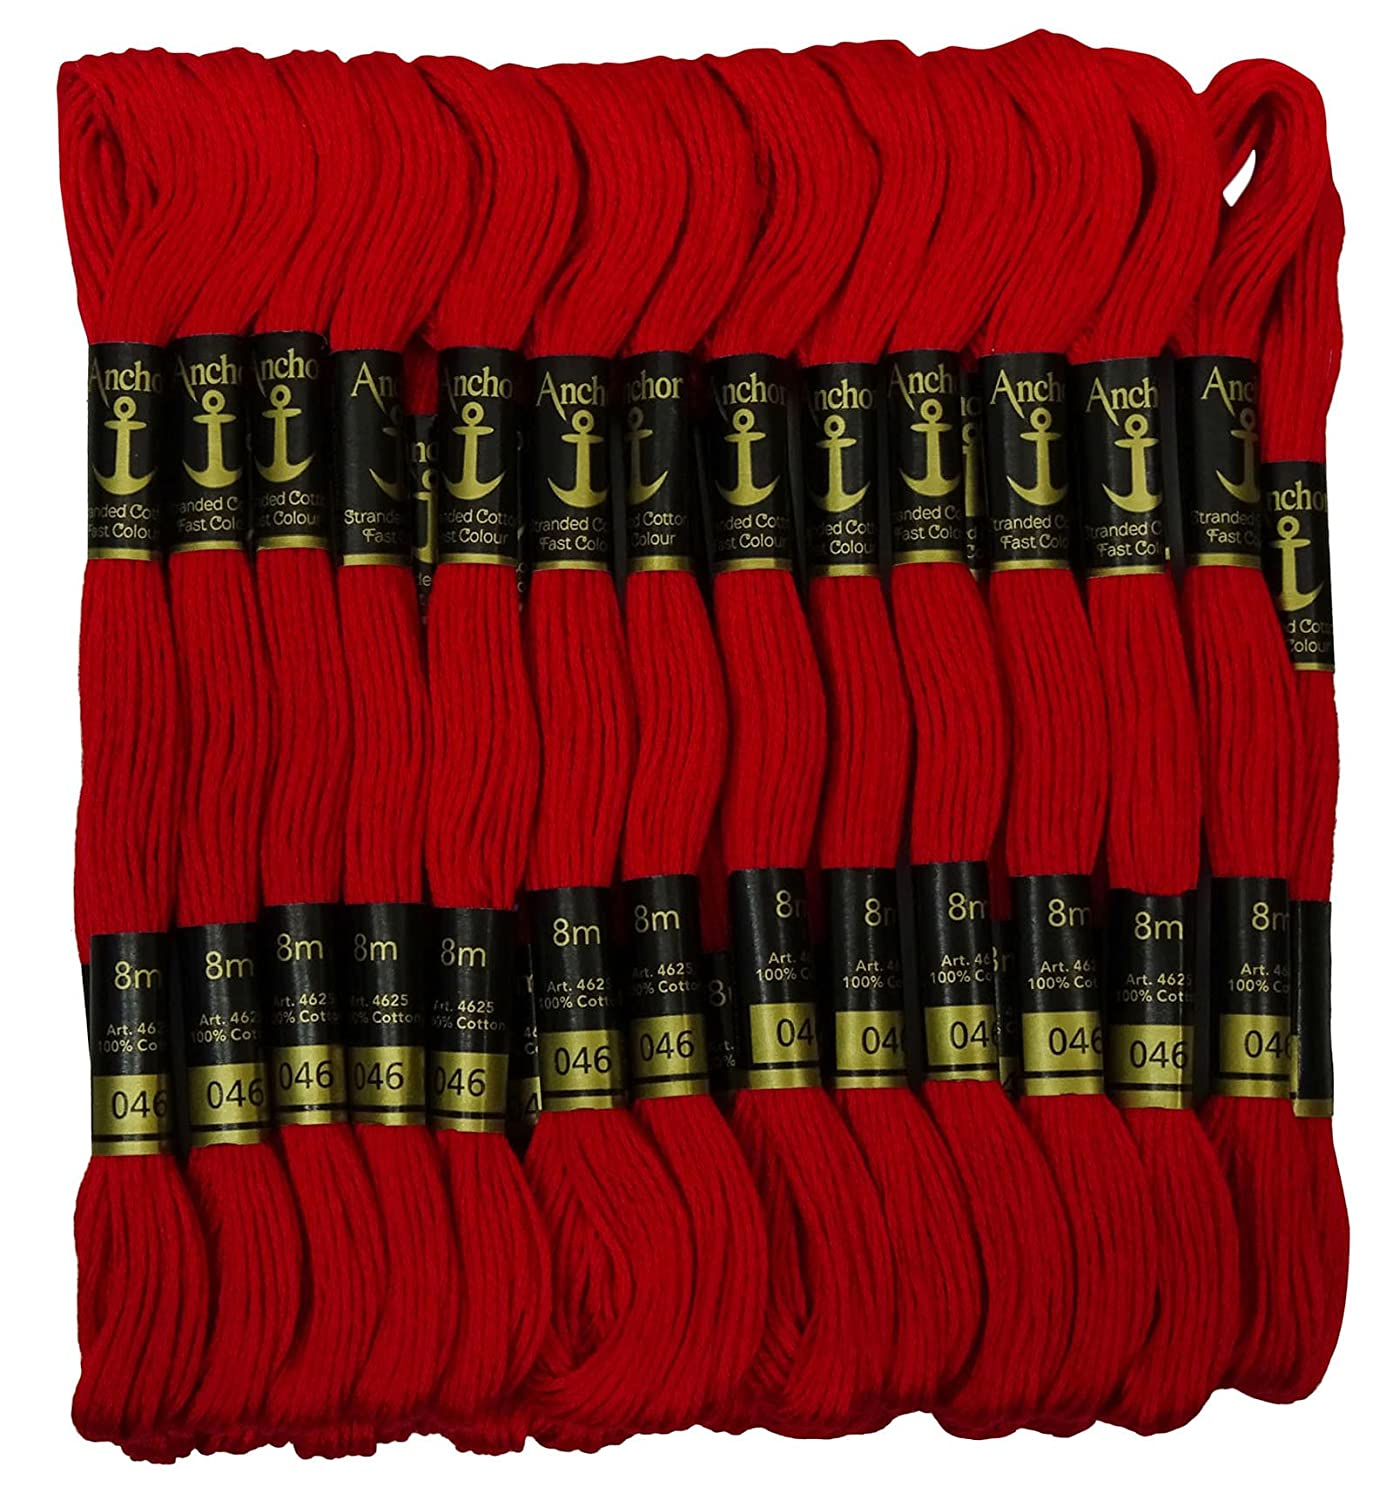 Anchor Cross Stitch Hand Embroidery Stranded Cotton Floss Thread 25 Skeins